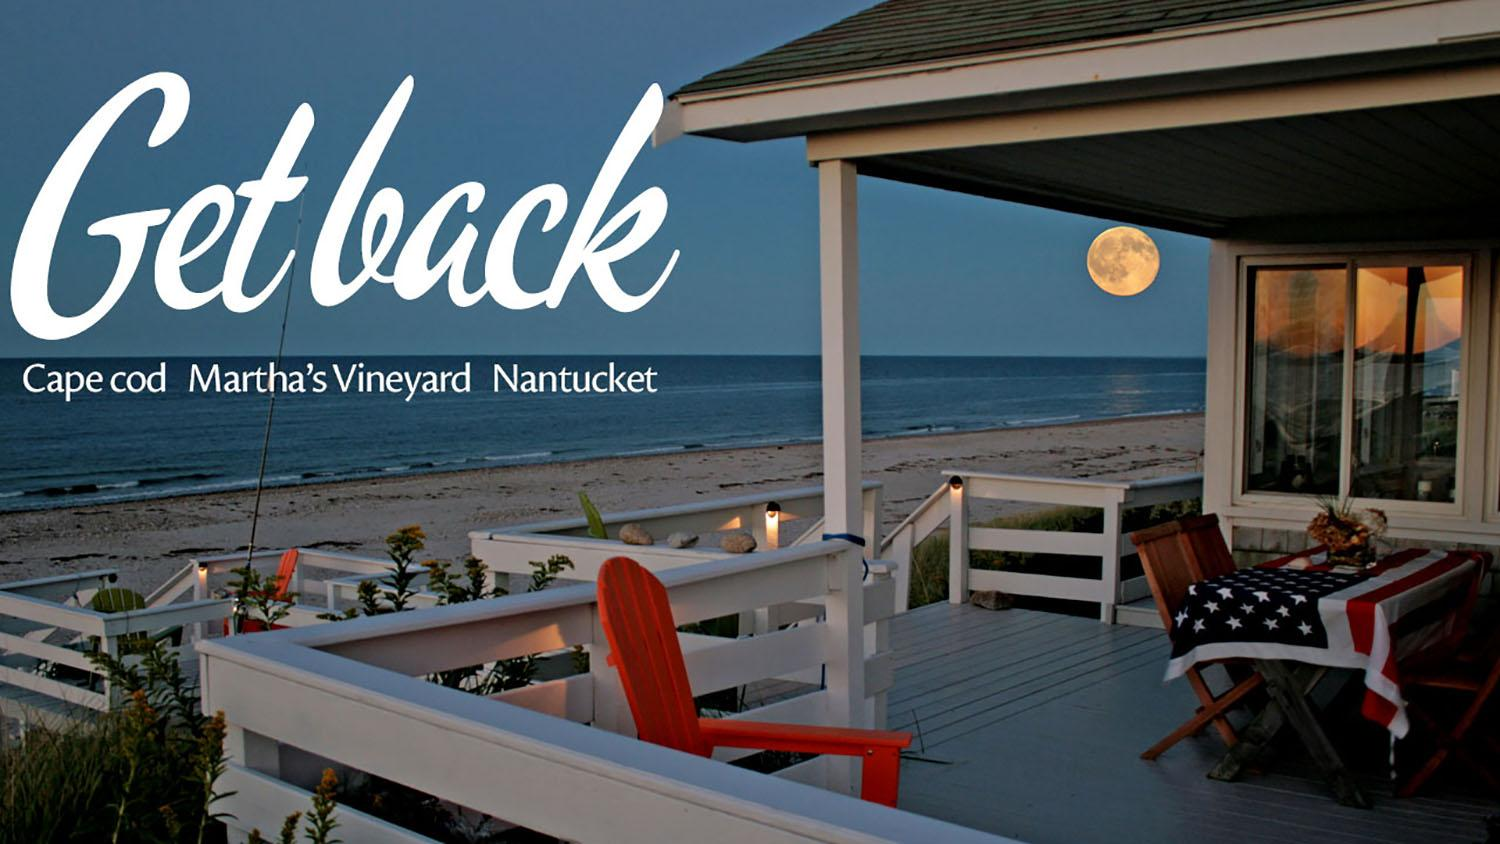 We've had hundreds of submissions from people that couldn't wait to #getBacktoCapeCod. Here is a look at some of our favorite moments so far.